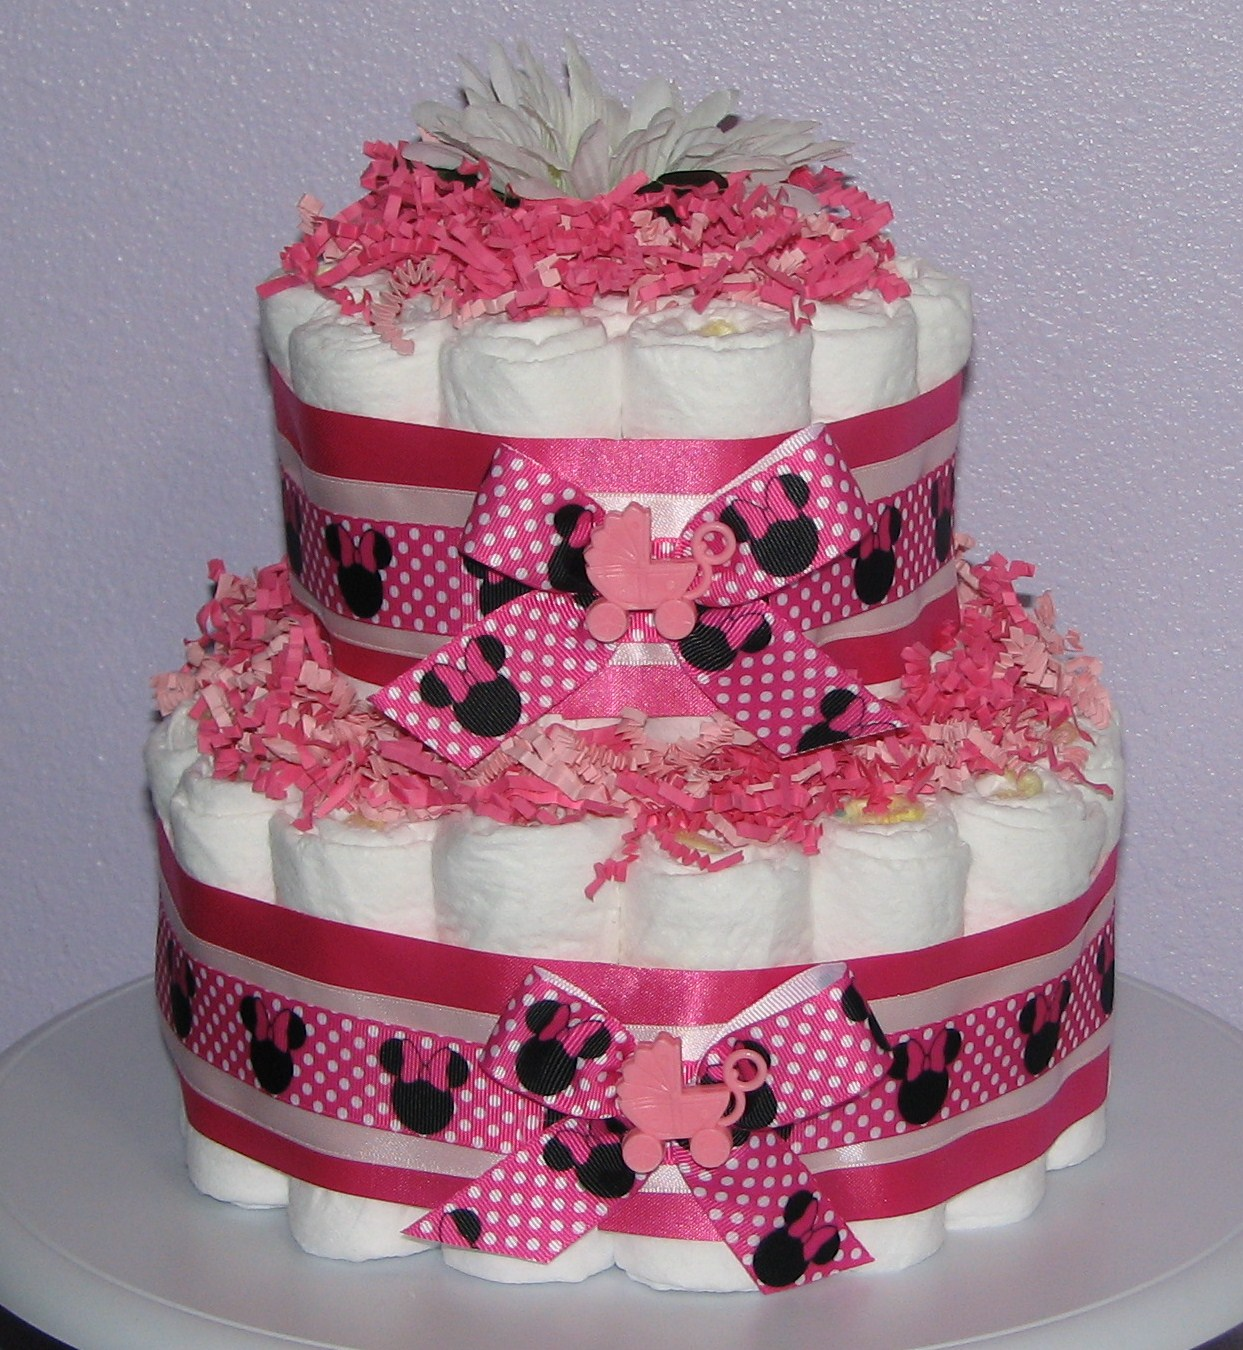 Minnie-Mouse-Diaper-Cake.JPG - Minnie Mouse Diaper Cake